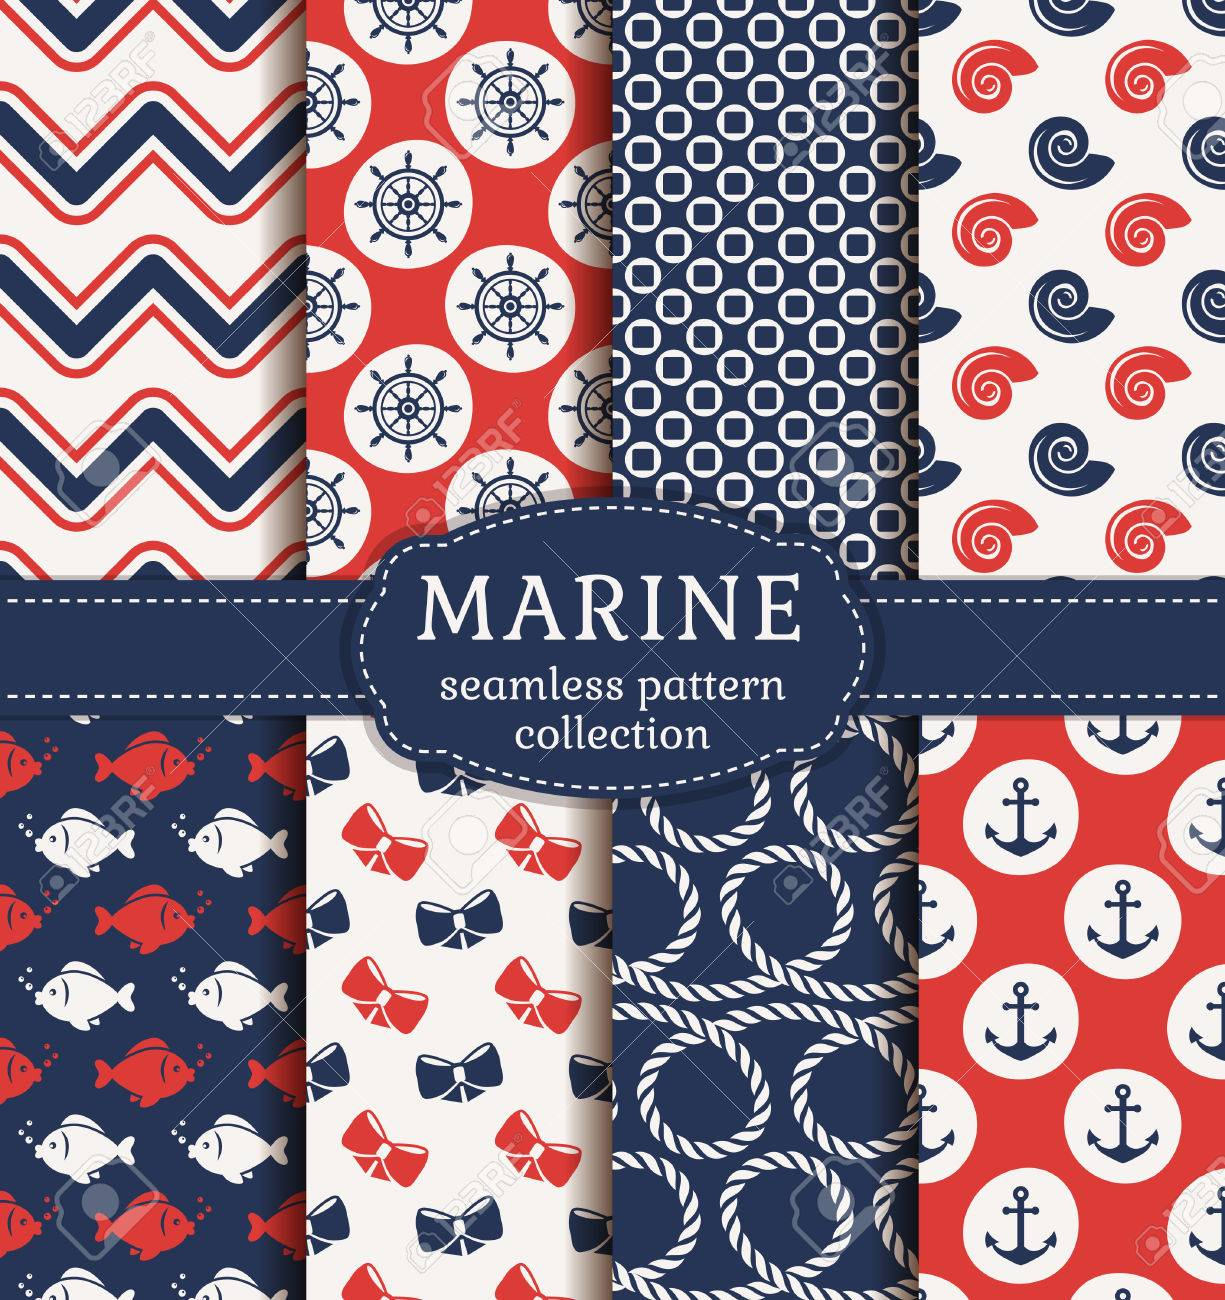 Set of marine and nautical backgrounds. Sea theme. Seamless patterns collection. Vector illustration. - 51878160